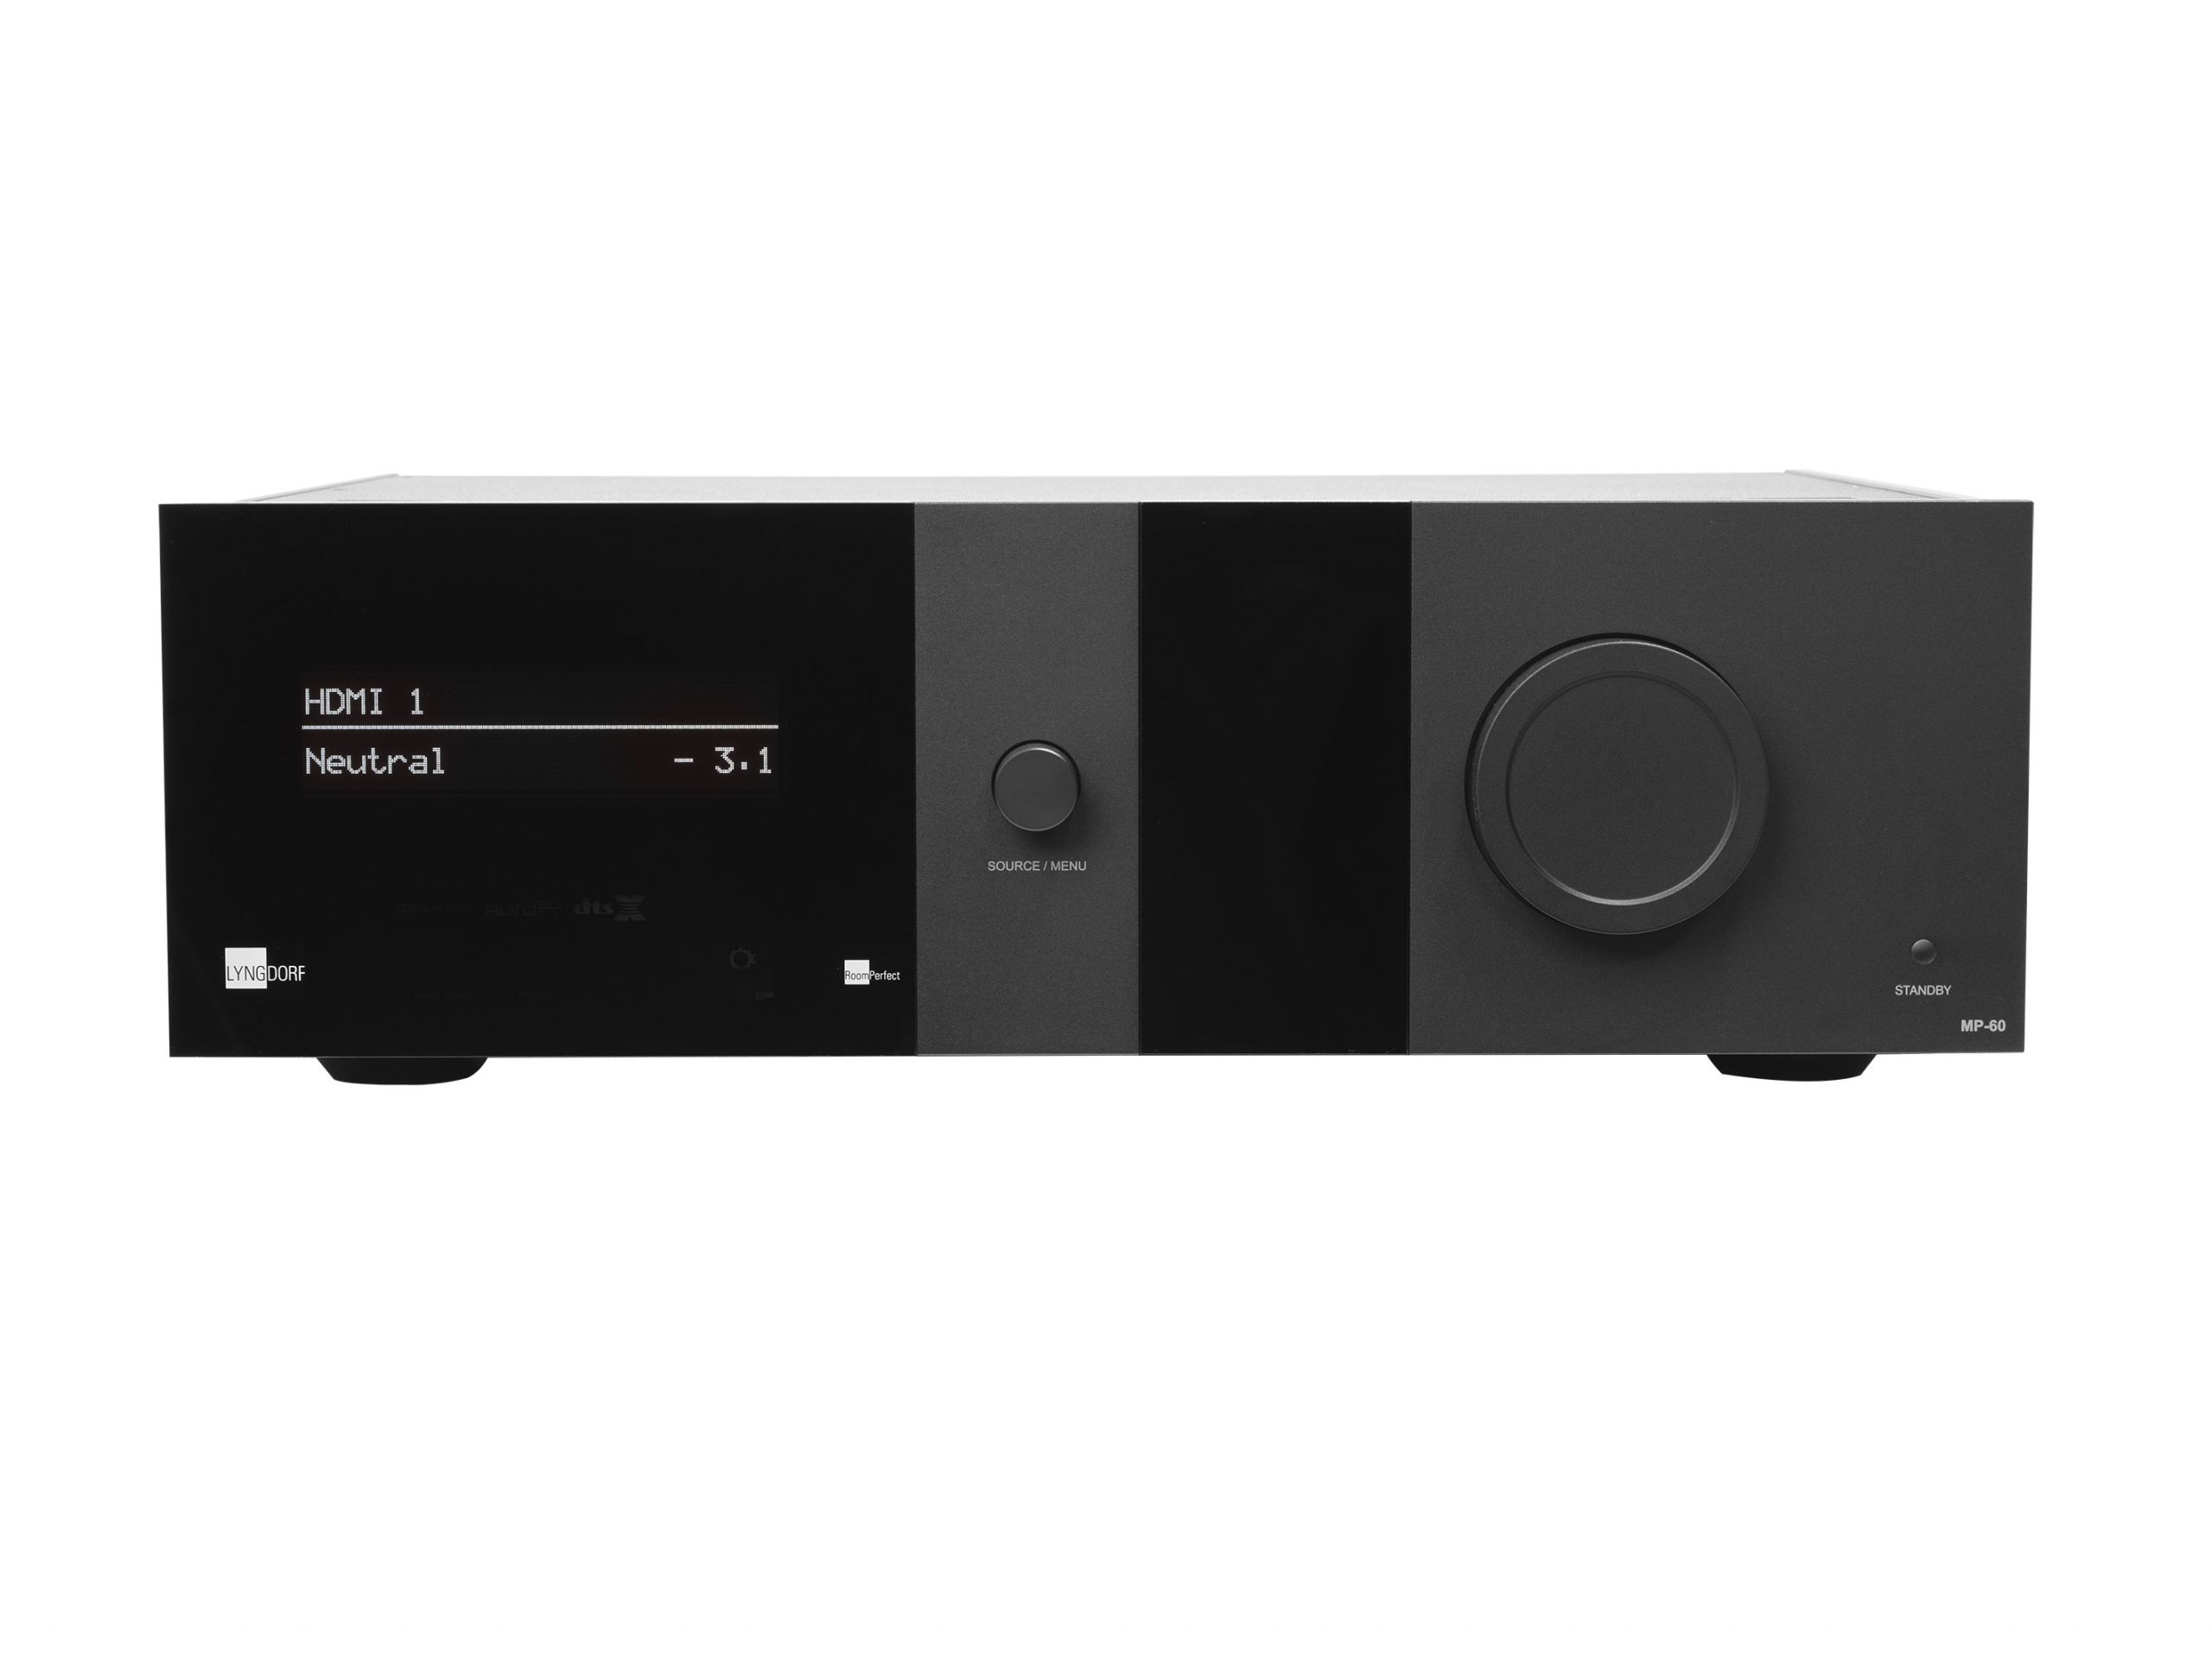 Lyngdorf MP-60 High End 16 Kanal Surround Prozessor, bei Audio Exclusive in der Vorführung. In Kombination mit JVC, Yamaha, Panamorph, L;umagen & Stewart.